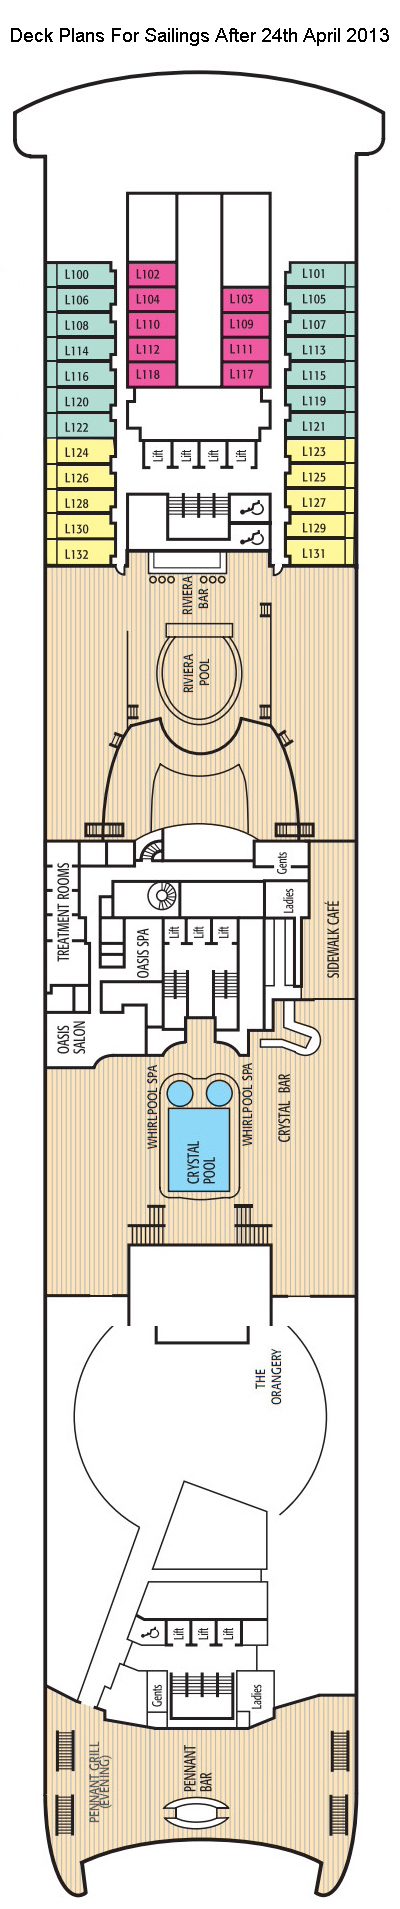 Aurora Lido Deck layout